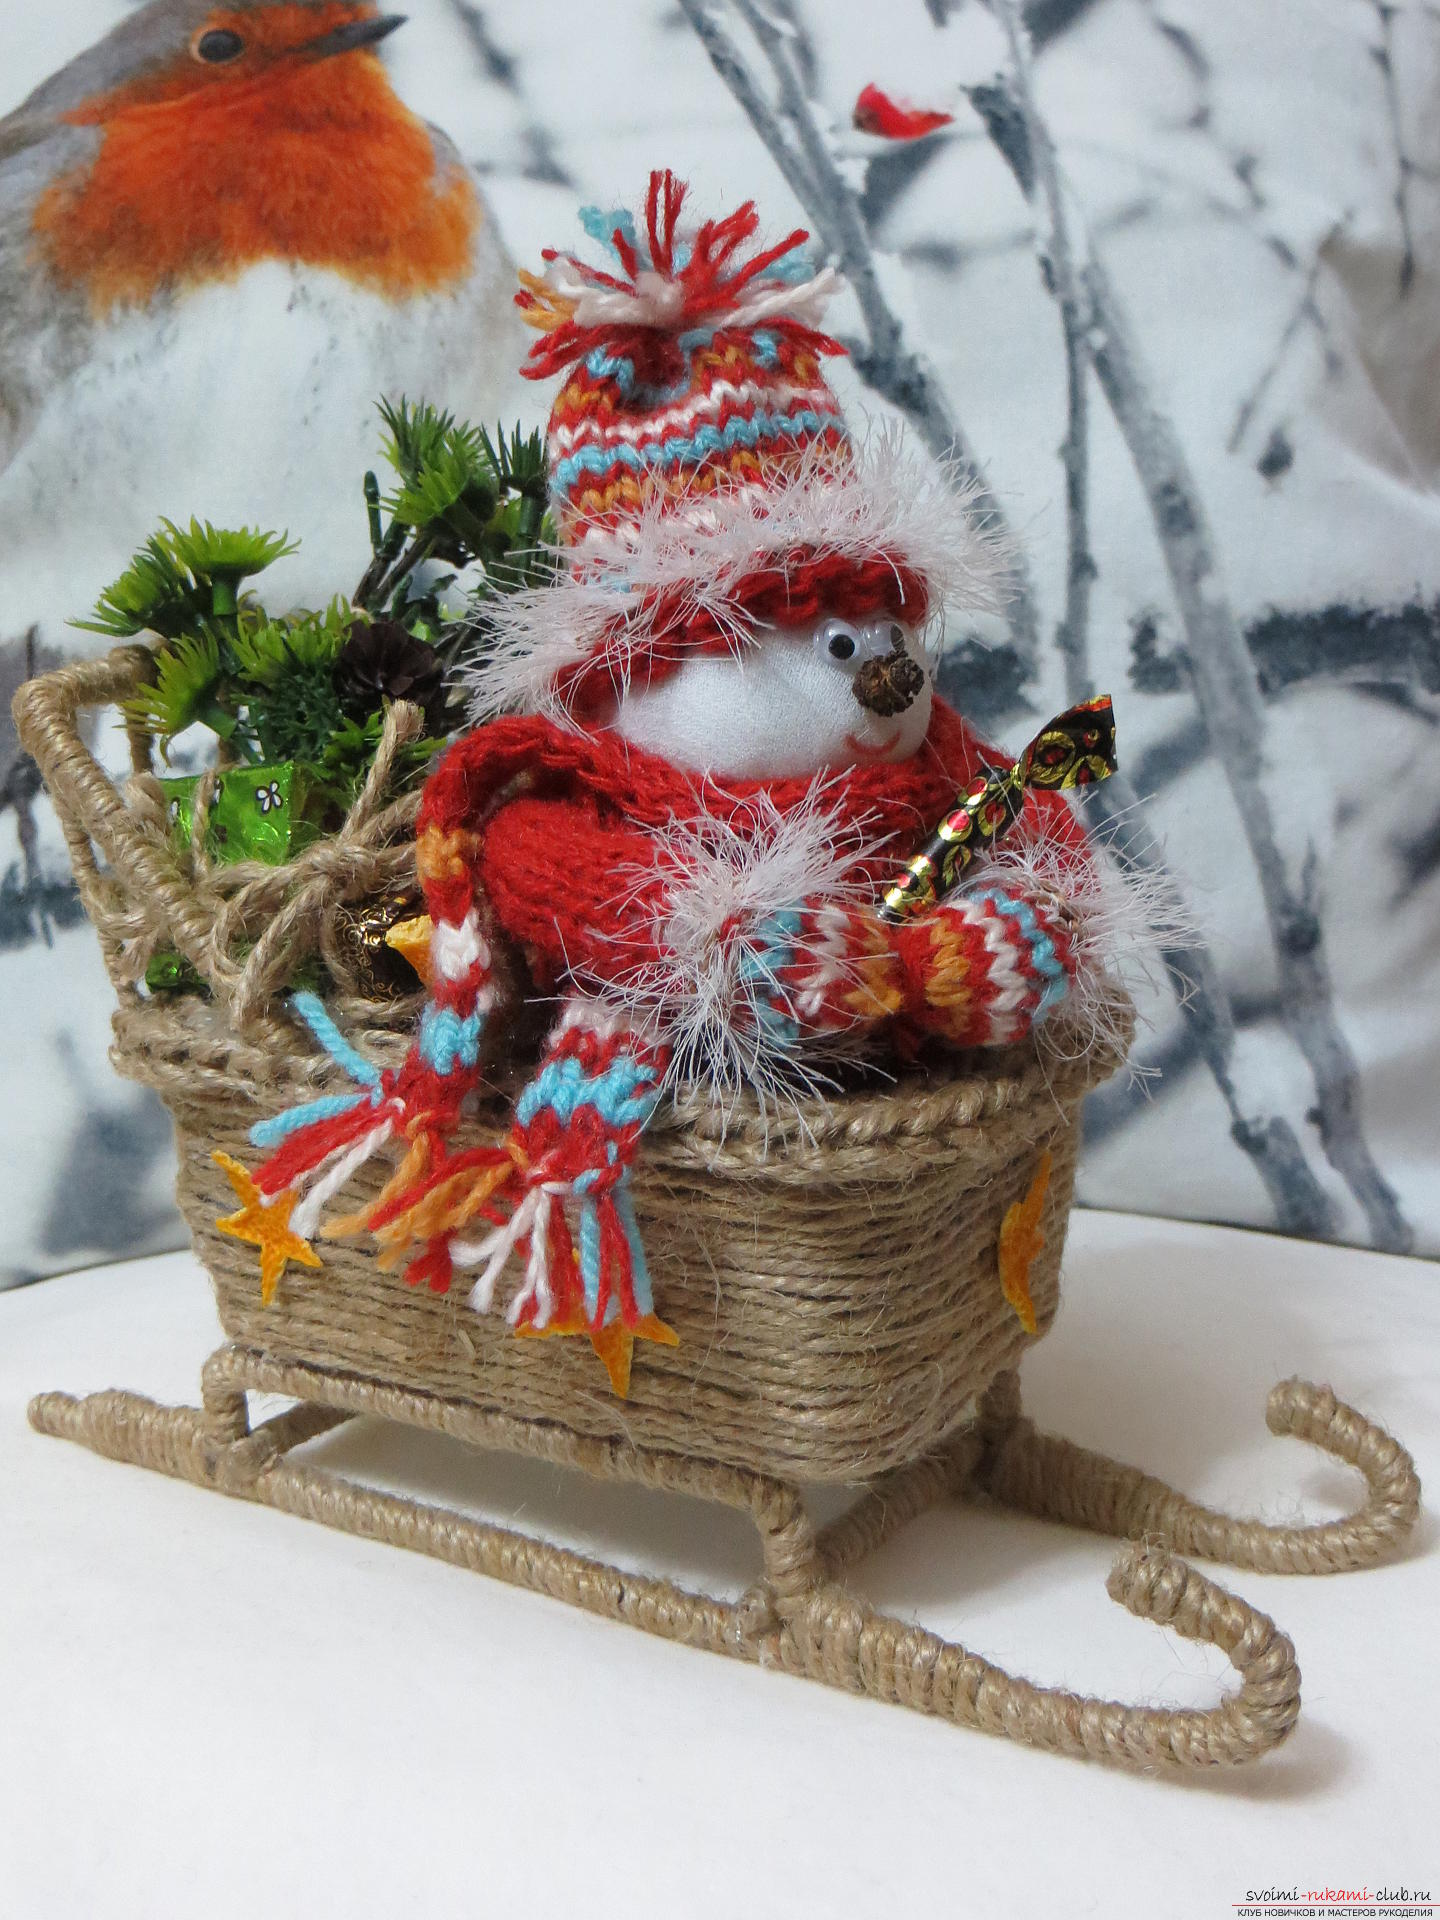 New Year is a wonderful holiday, when the time of miracles comes. New Year's crafts adorn the house and bring joy to the children, because a New Year snowman with gifts will bring the best candies .. Photo №1